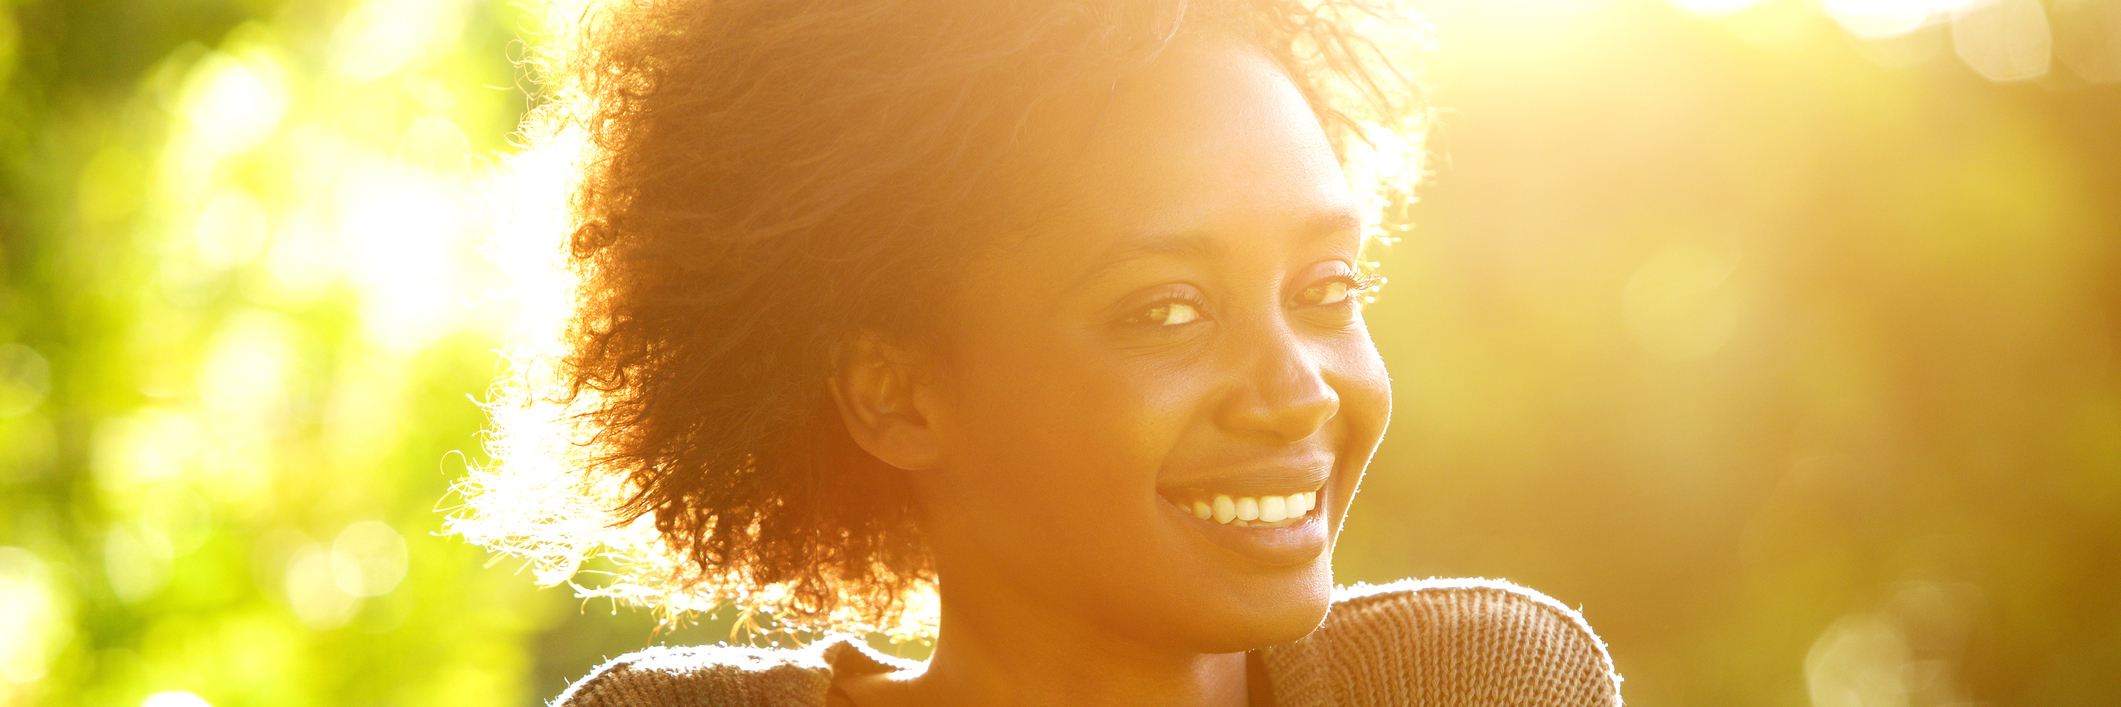 Smiling Black woman at sunset.